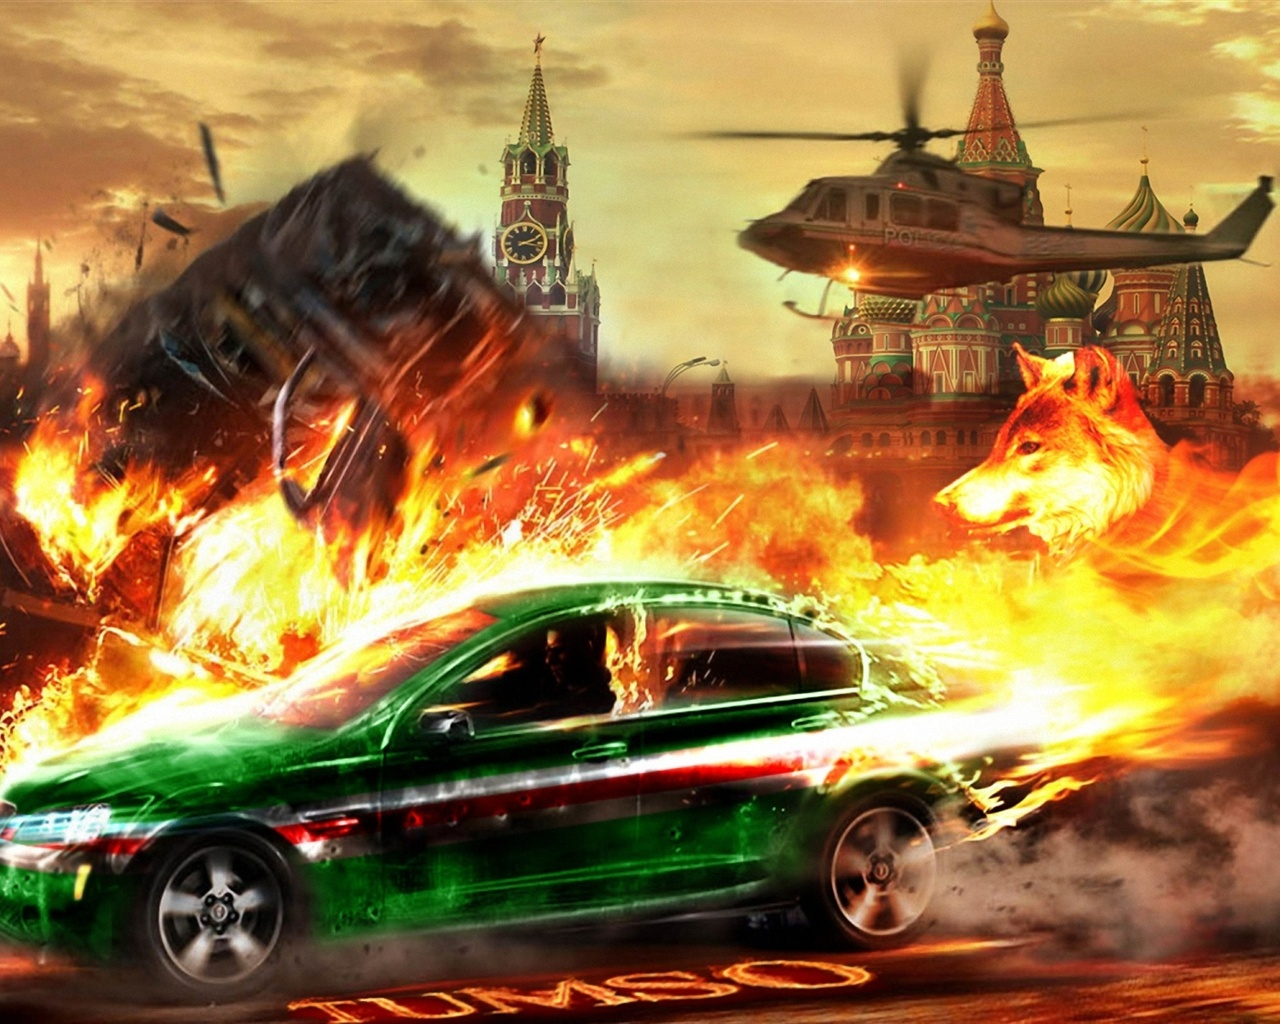 Helicopter chase car Kremlin wallpaper - 1280x1024